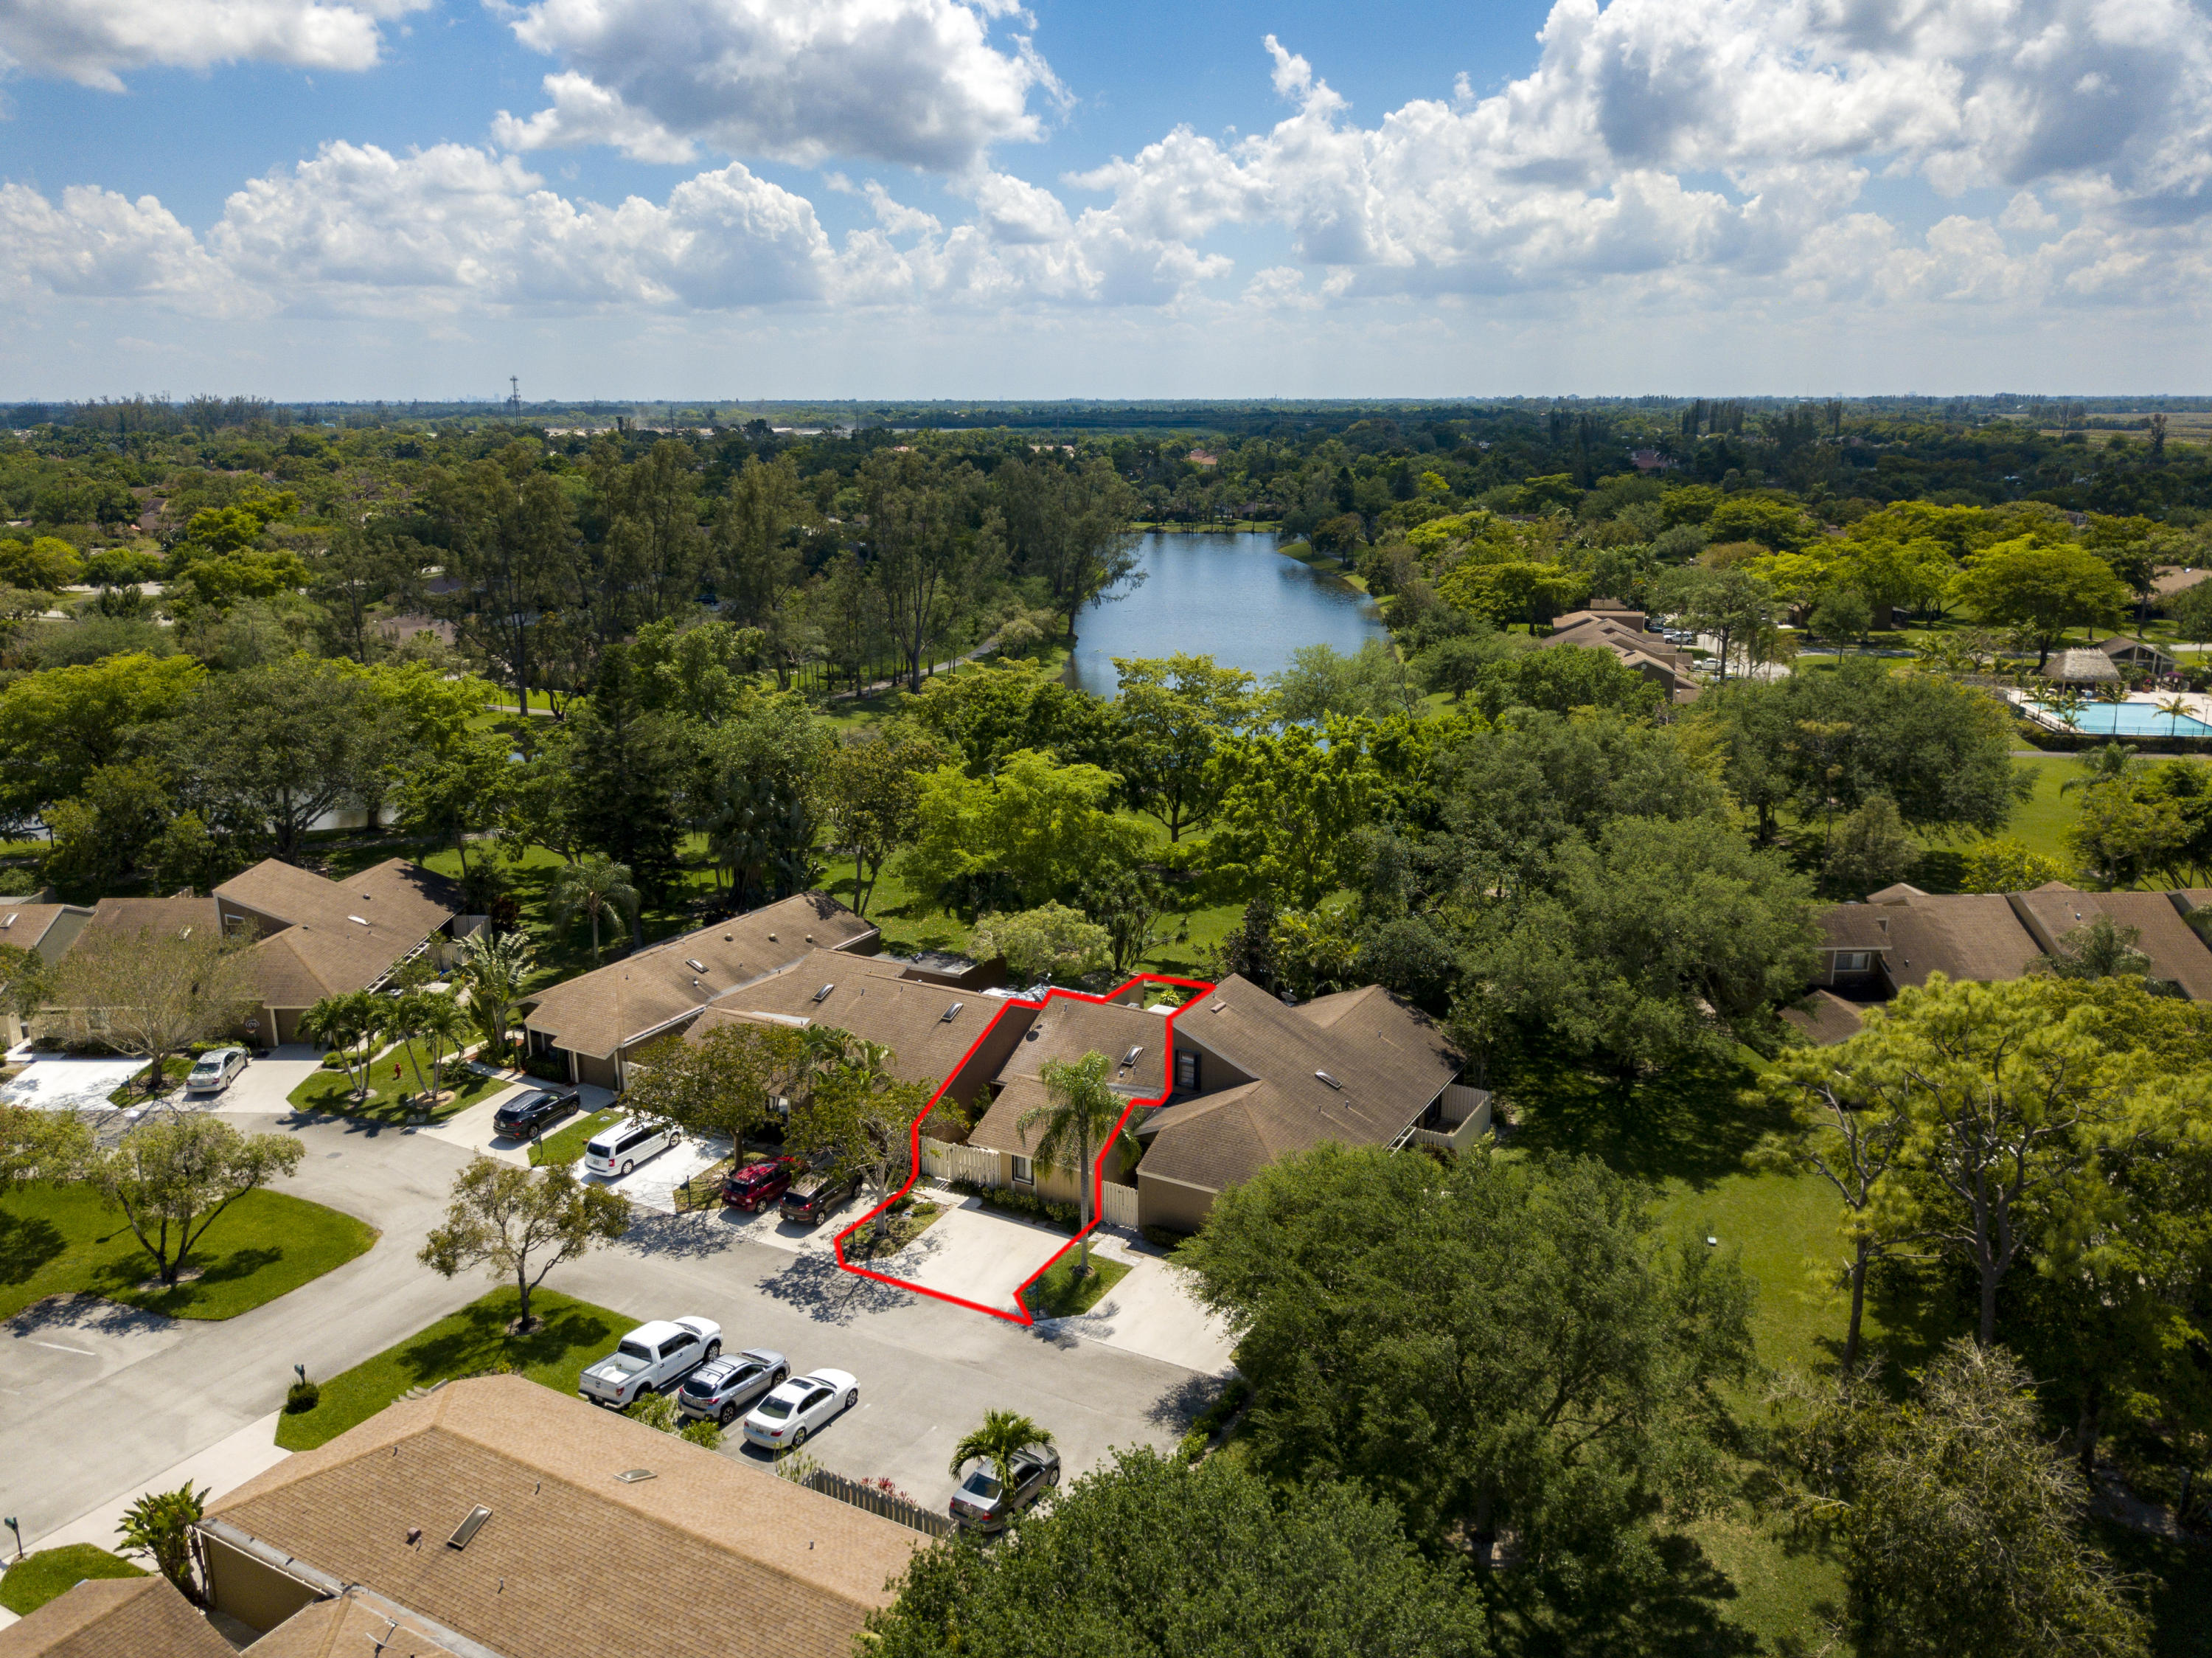 Don't miss out on a great opportunity to get into great A+ rated school district for the 2019-2020 school year.  This 3 Bedroom 2 Bath Villa is located in the Lush/Plush Timberwalk II within Loggers Run.  Loggers run is nestled into the South West corner of Boca Raton.  Light traffic count, shopping close by, 2 neighborhood parks and one regional park close by with Golf, Dog Parks, Amphitheater and Water park.  This villa provides a private entry area, Vaulted ceilings, Hurricane According shutters, enclosed back patio perfect for an office or play area for kids.  Located in a very private area of the community. The back yard is vast with green space, overlooks the lake and jogging path, Walking distance to the recently renovated community pool.  You will love it!